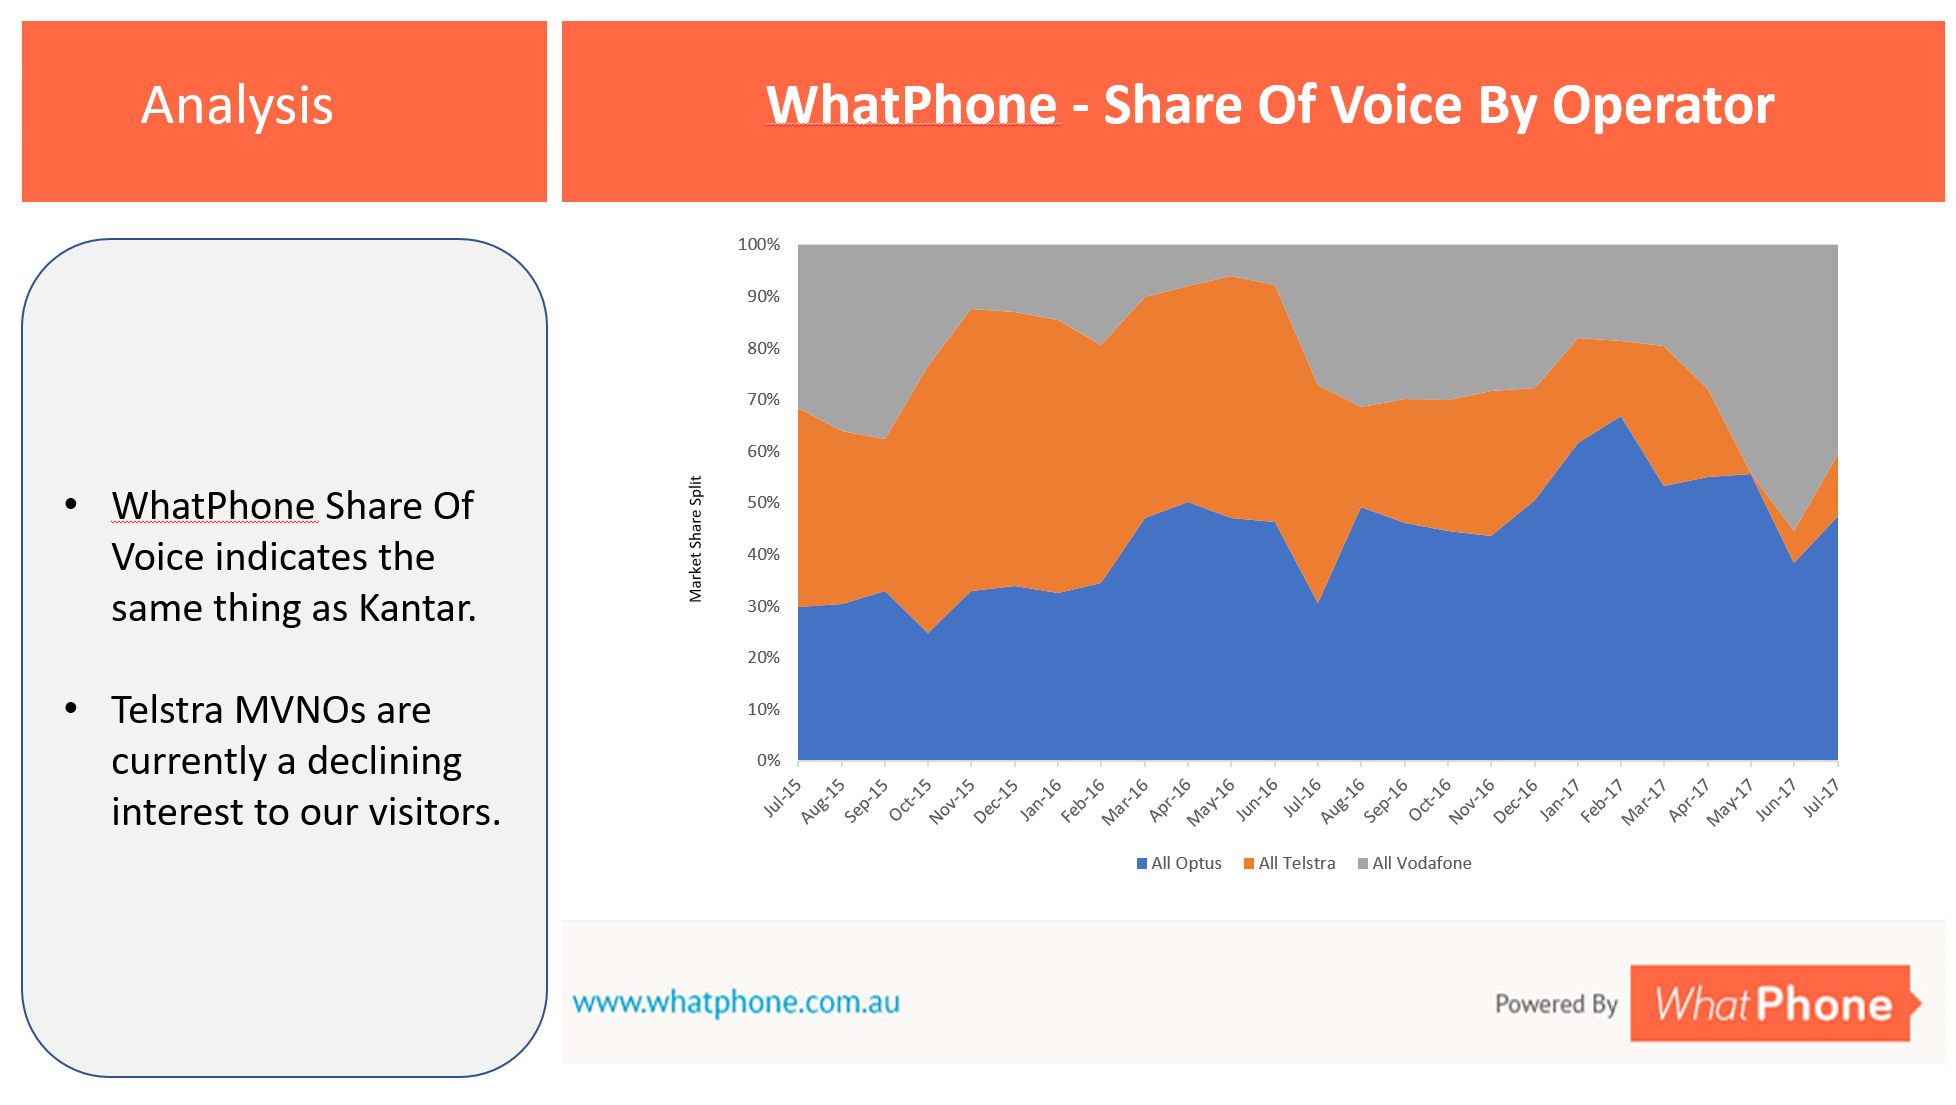 WhatPhone Share of Voice